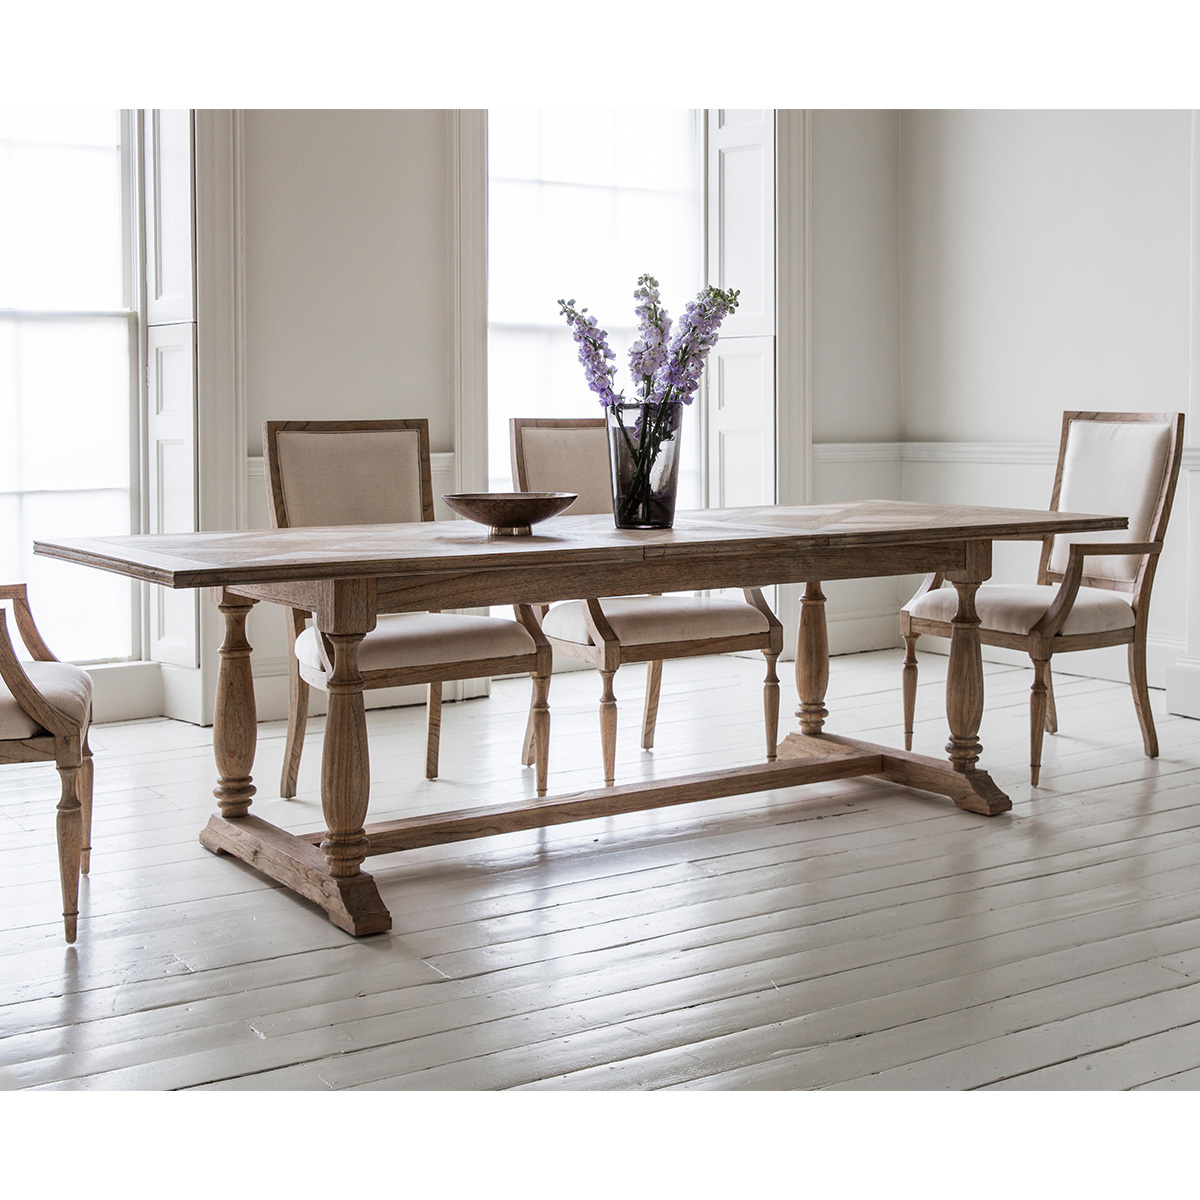 French Colonial Rectangular Extending Dining Table with Chairs (Number of Chairs: 8 Standard Chairs)